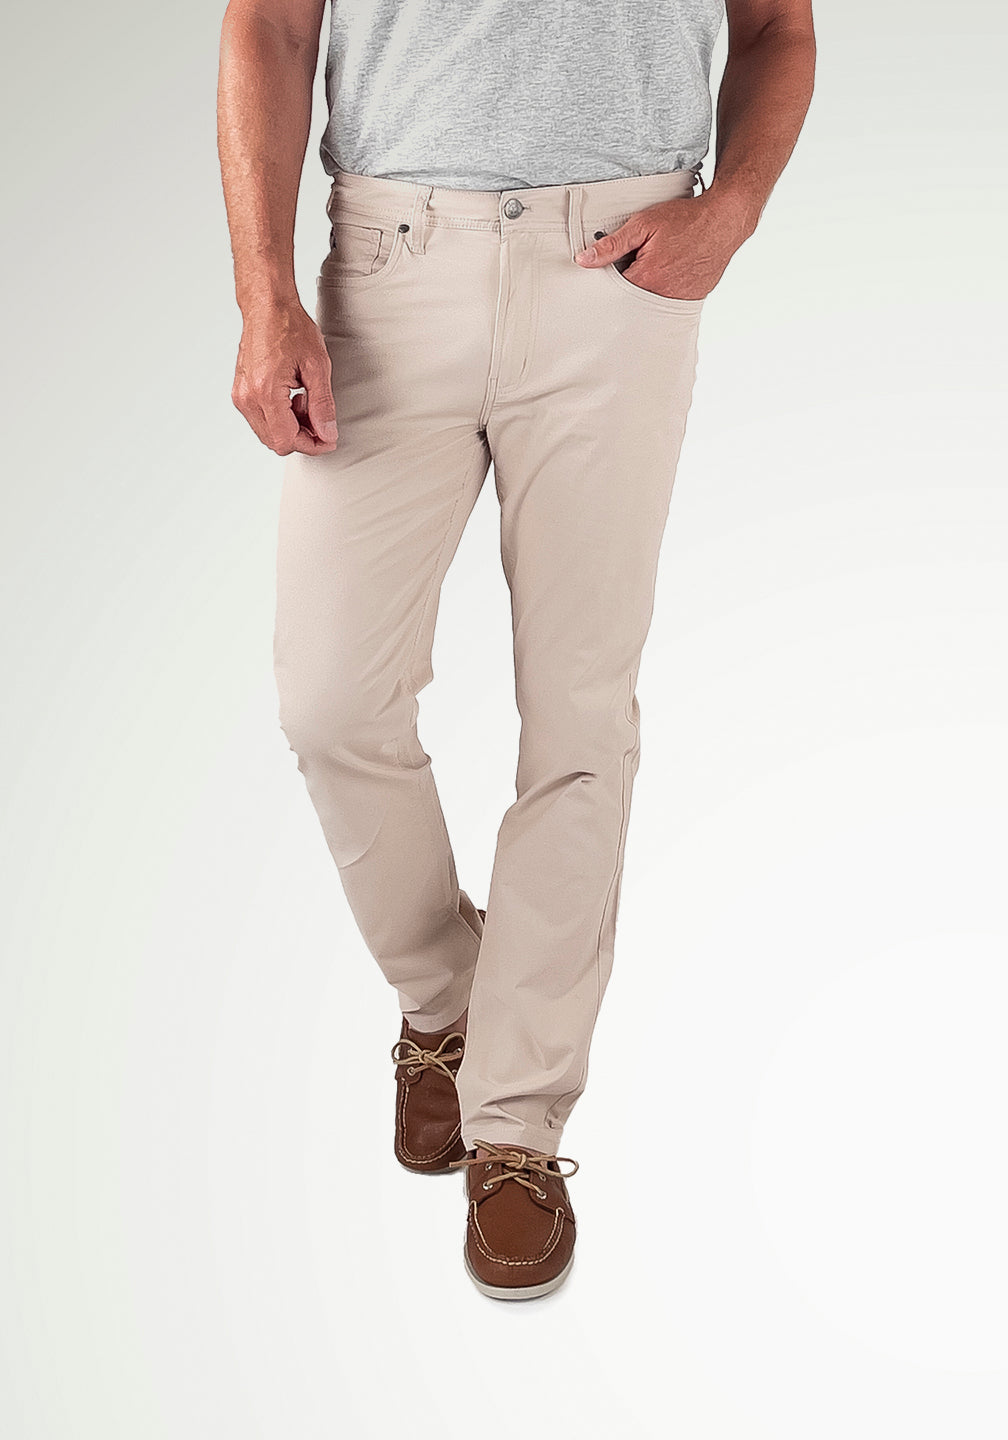 Front View Performance 5-Pocket Pants- Westport Athletic Straight Fit in Pumice